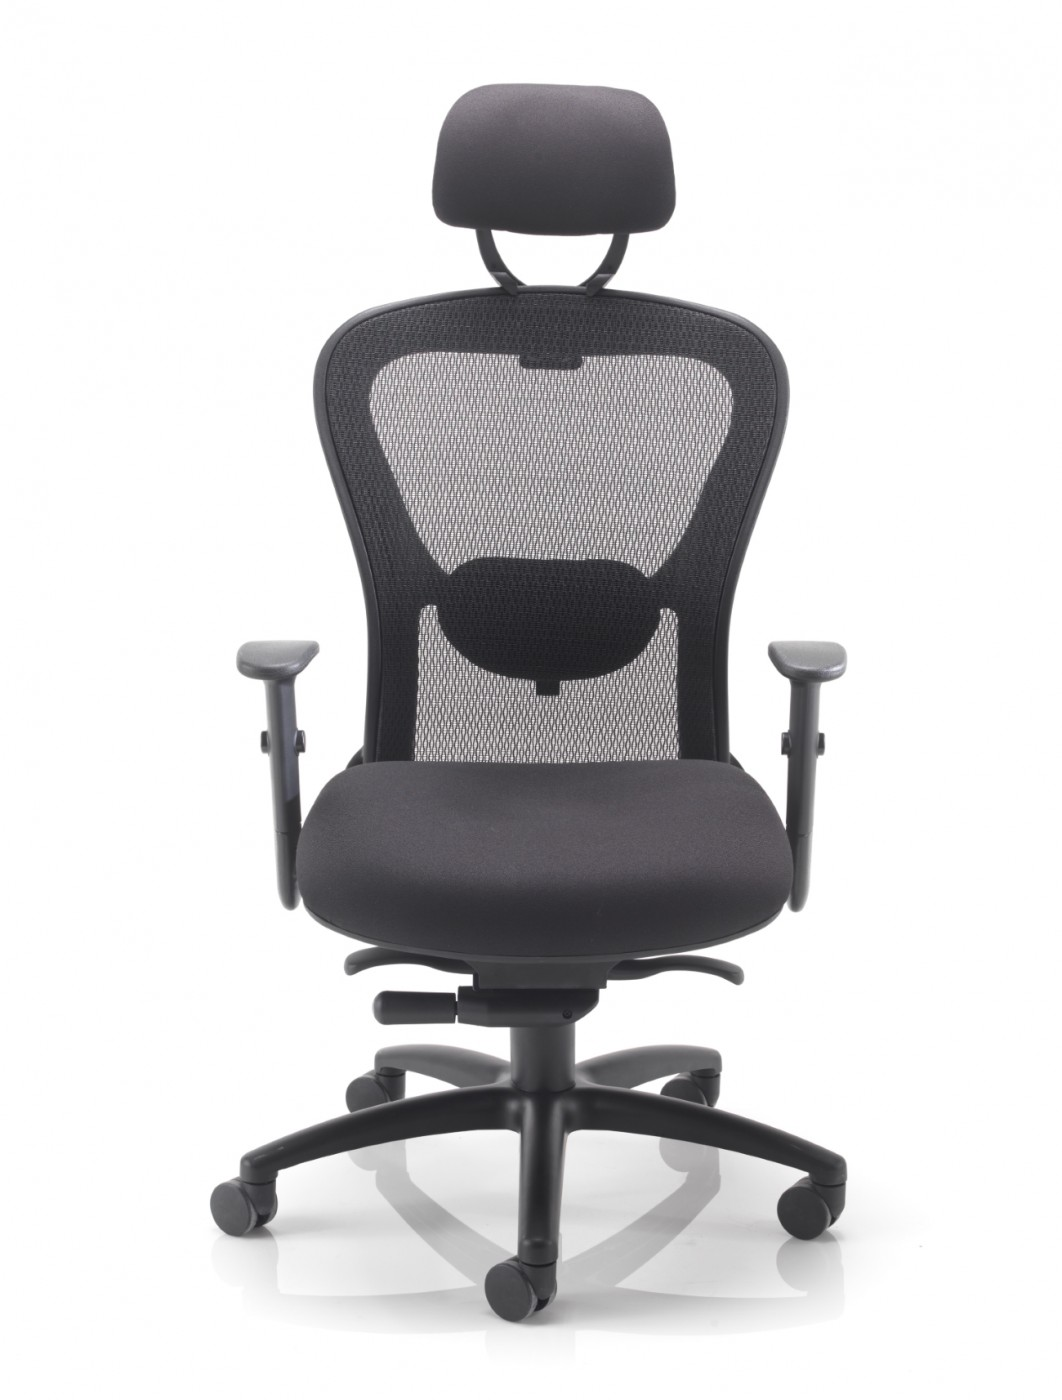 heavy duty gaming chair chaise lounge cushions office chairs tc strata 24 hour mesh